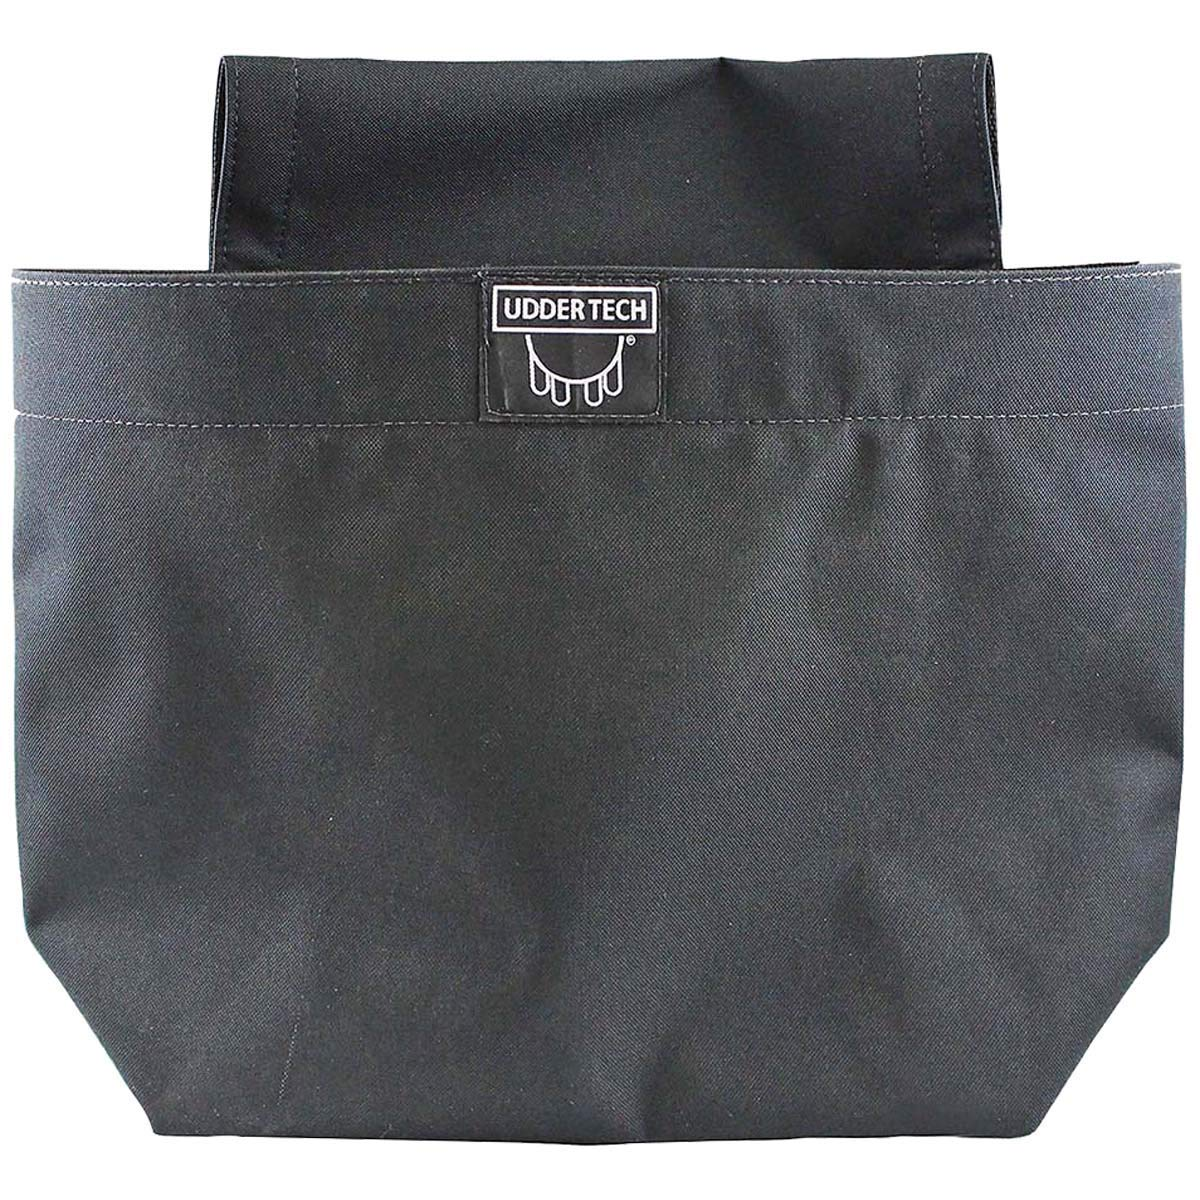 Udder Tech Cloth Towel Pouch, Large, Polyester by Udder Tech